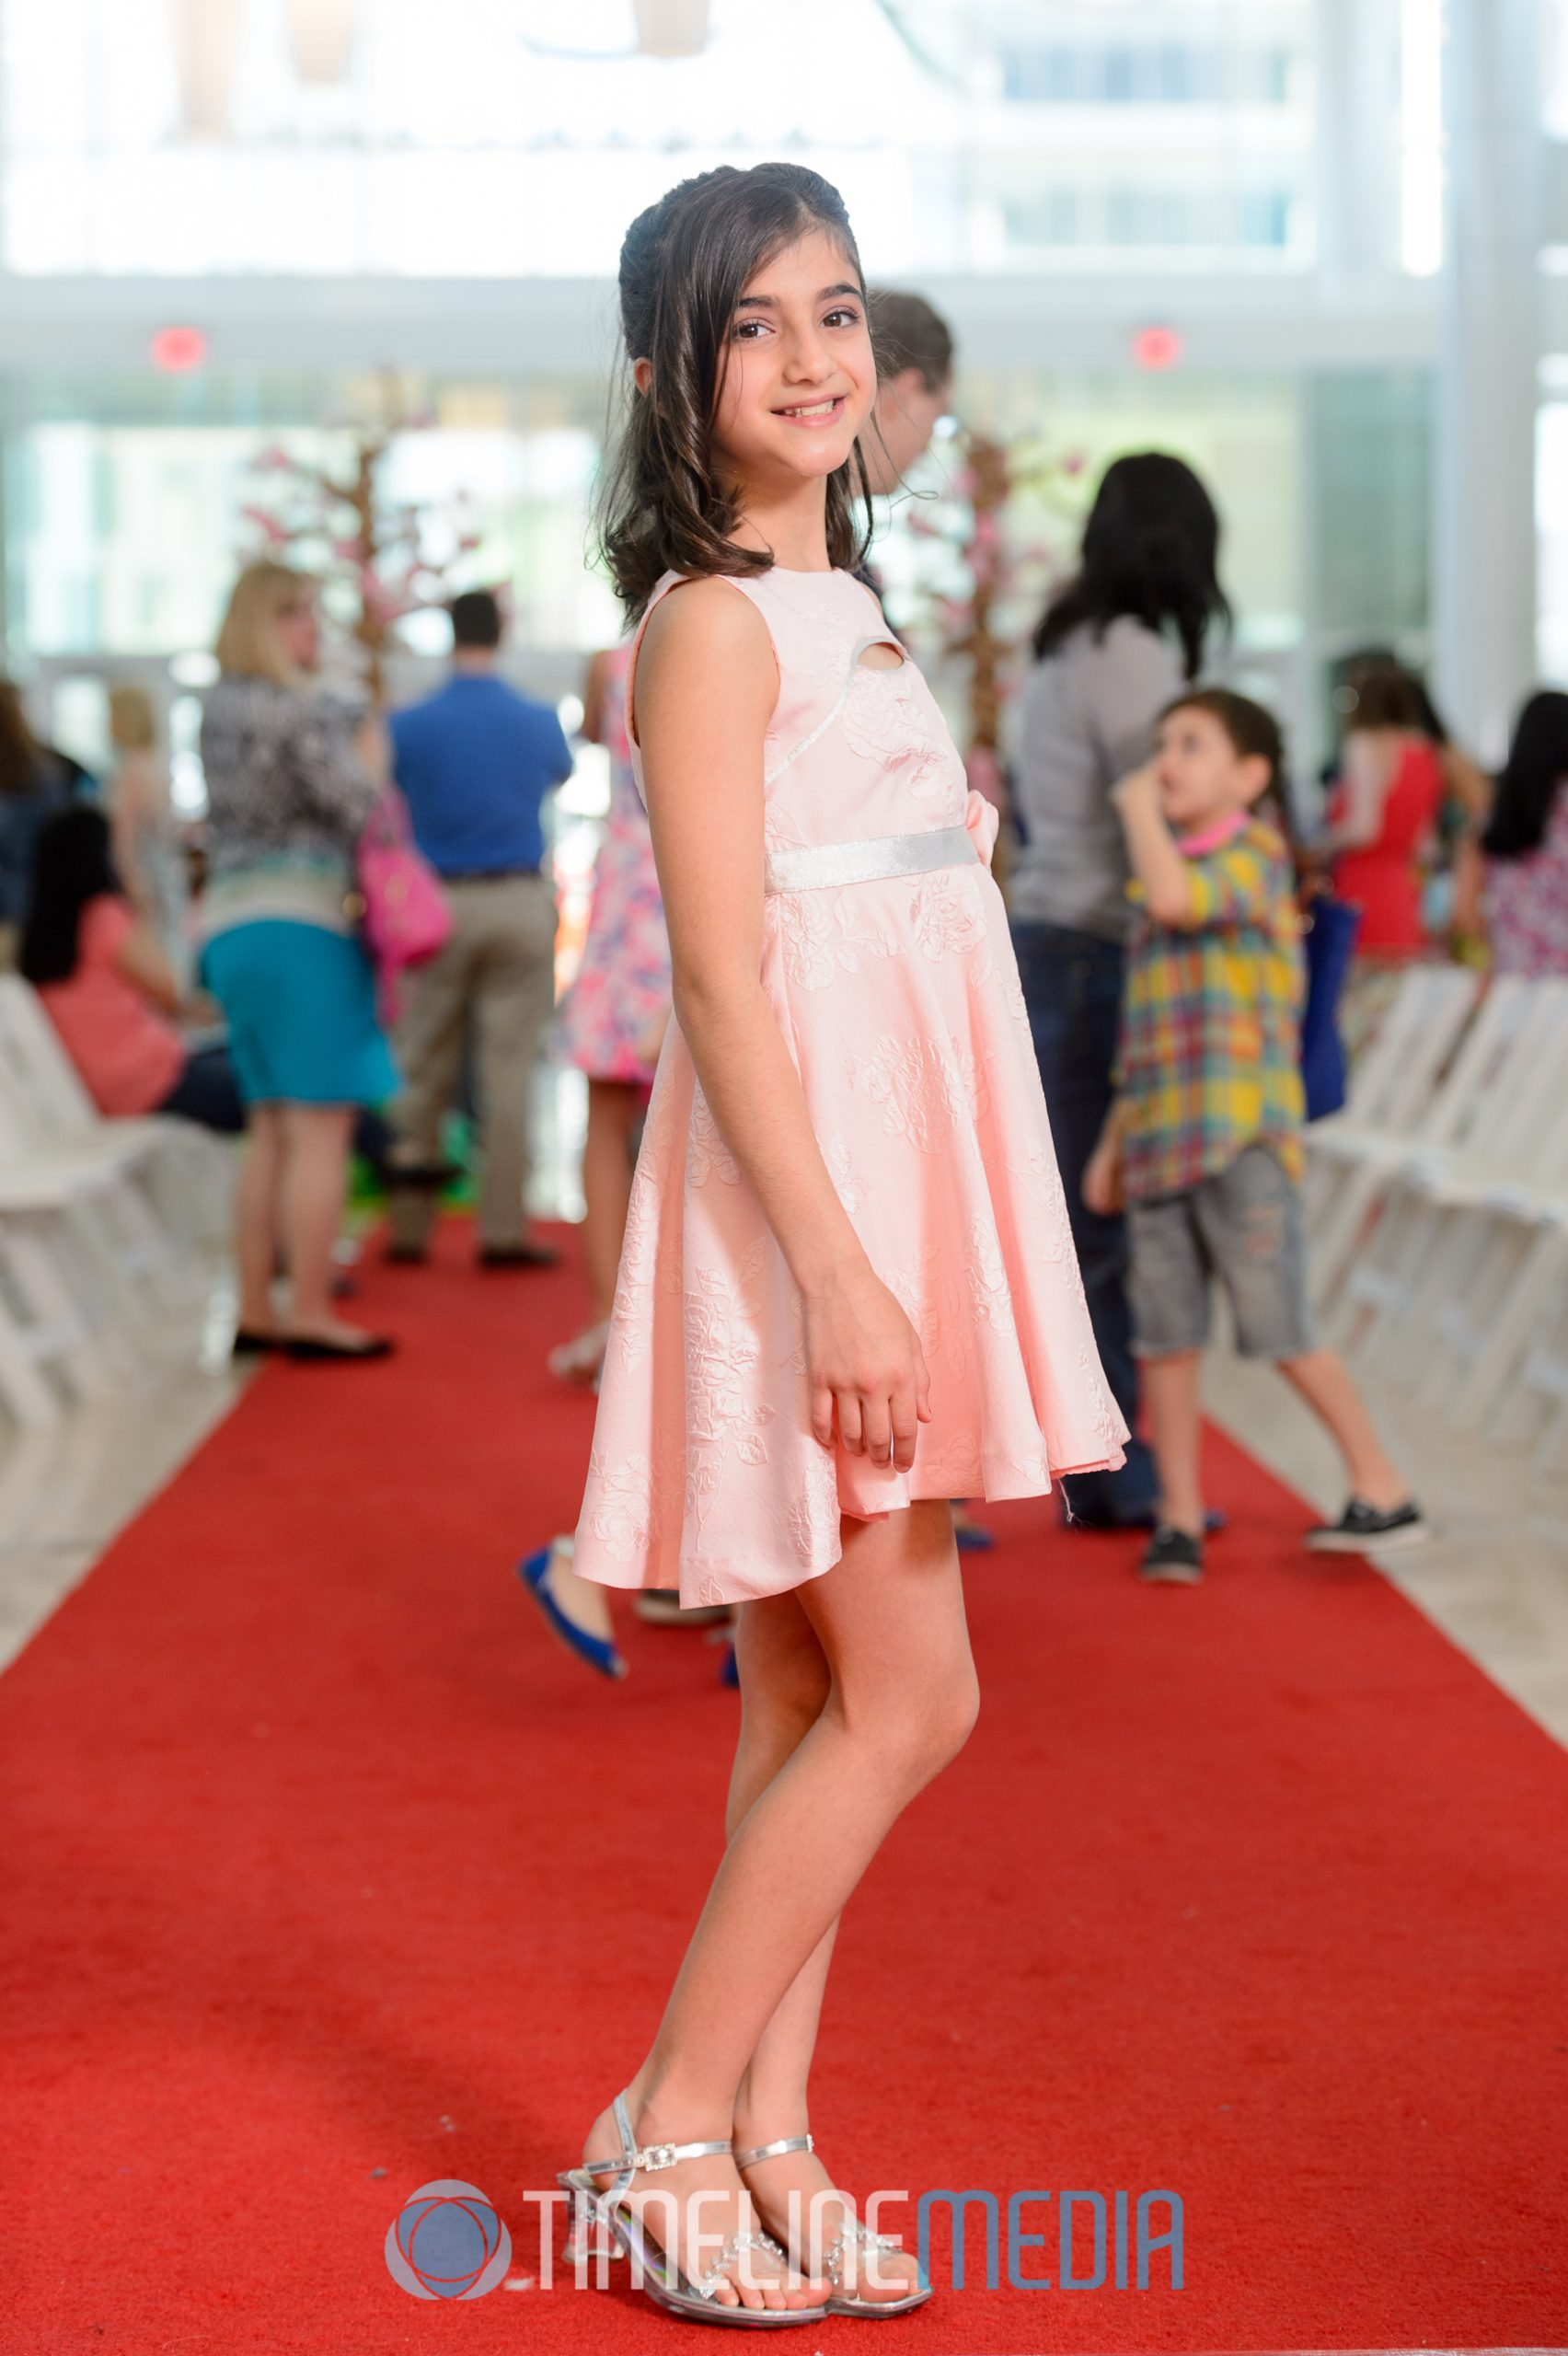 Runway photo after show ©TimeLine Media Cherry Blossom Fashion